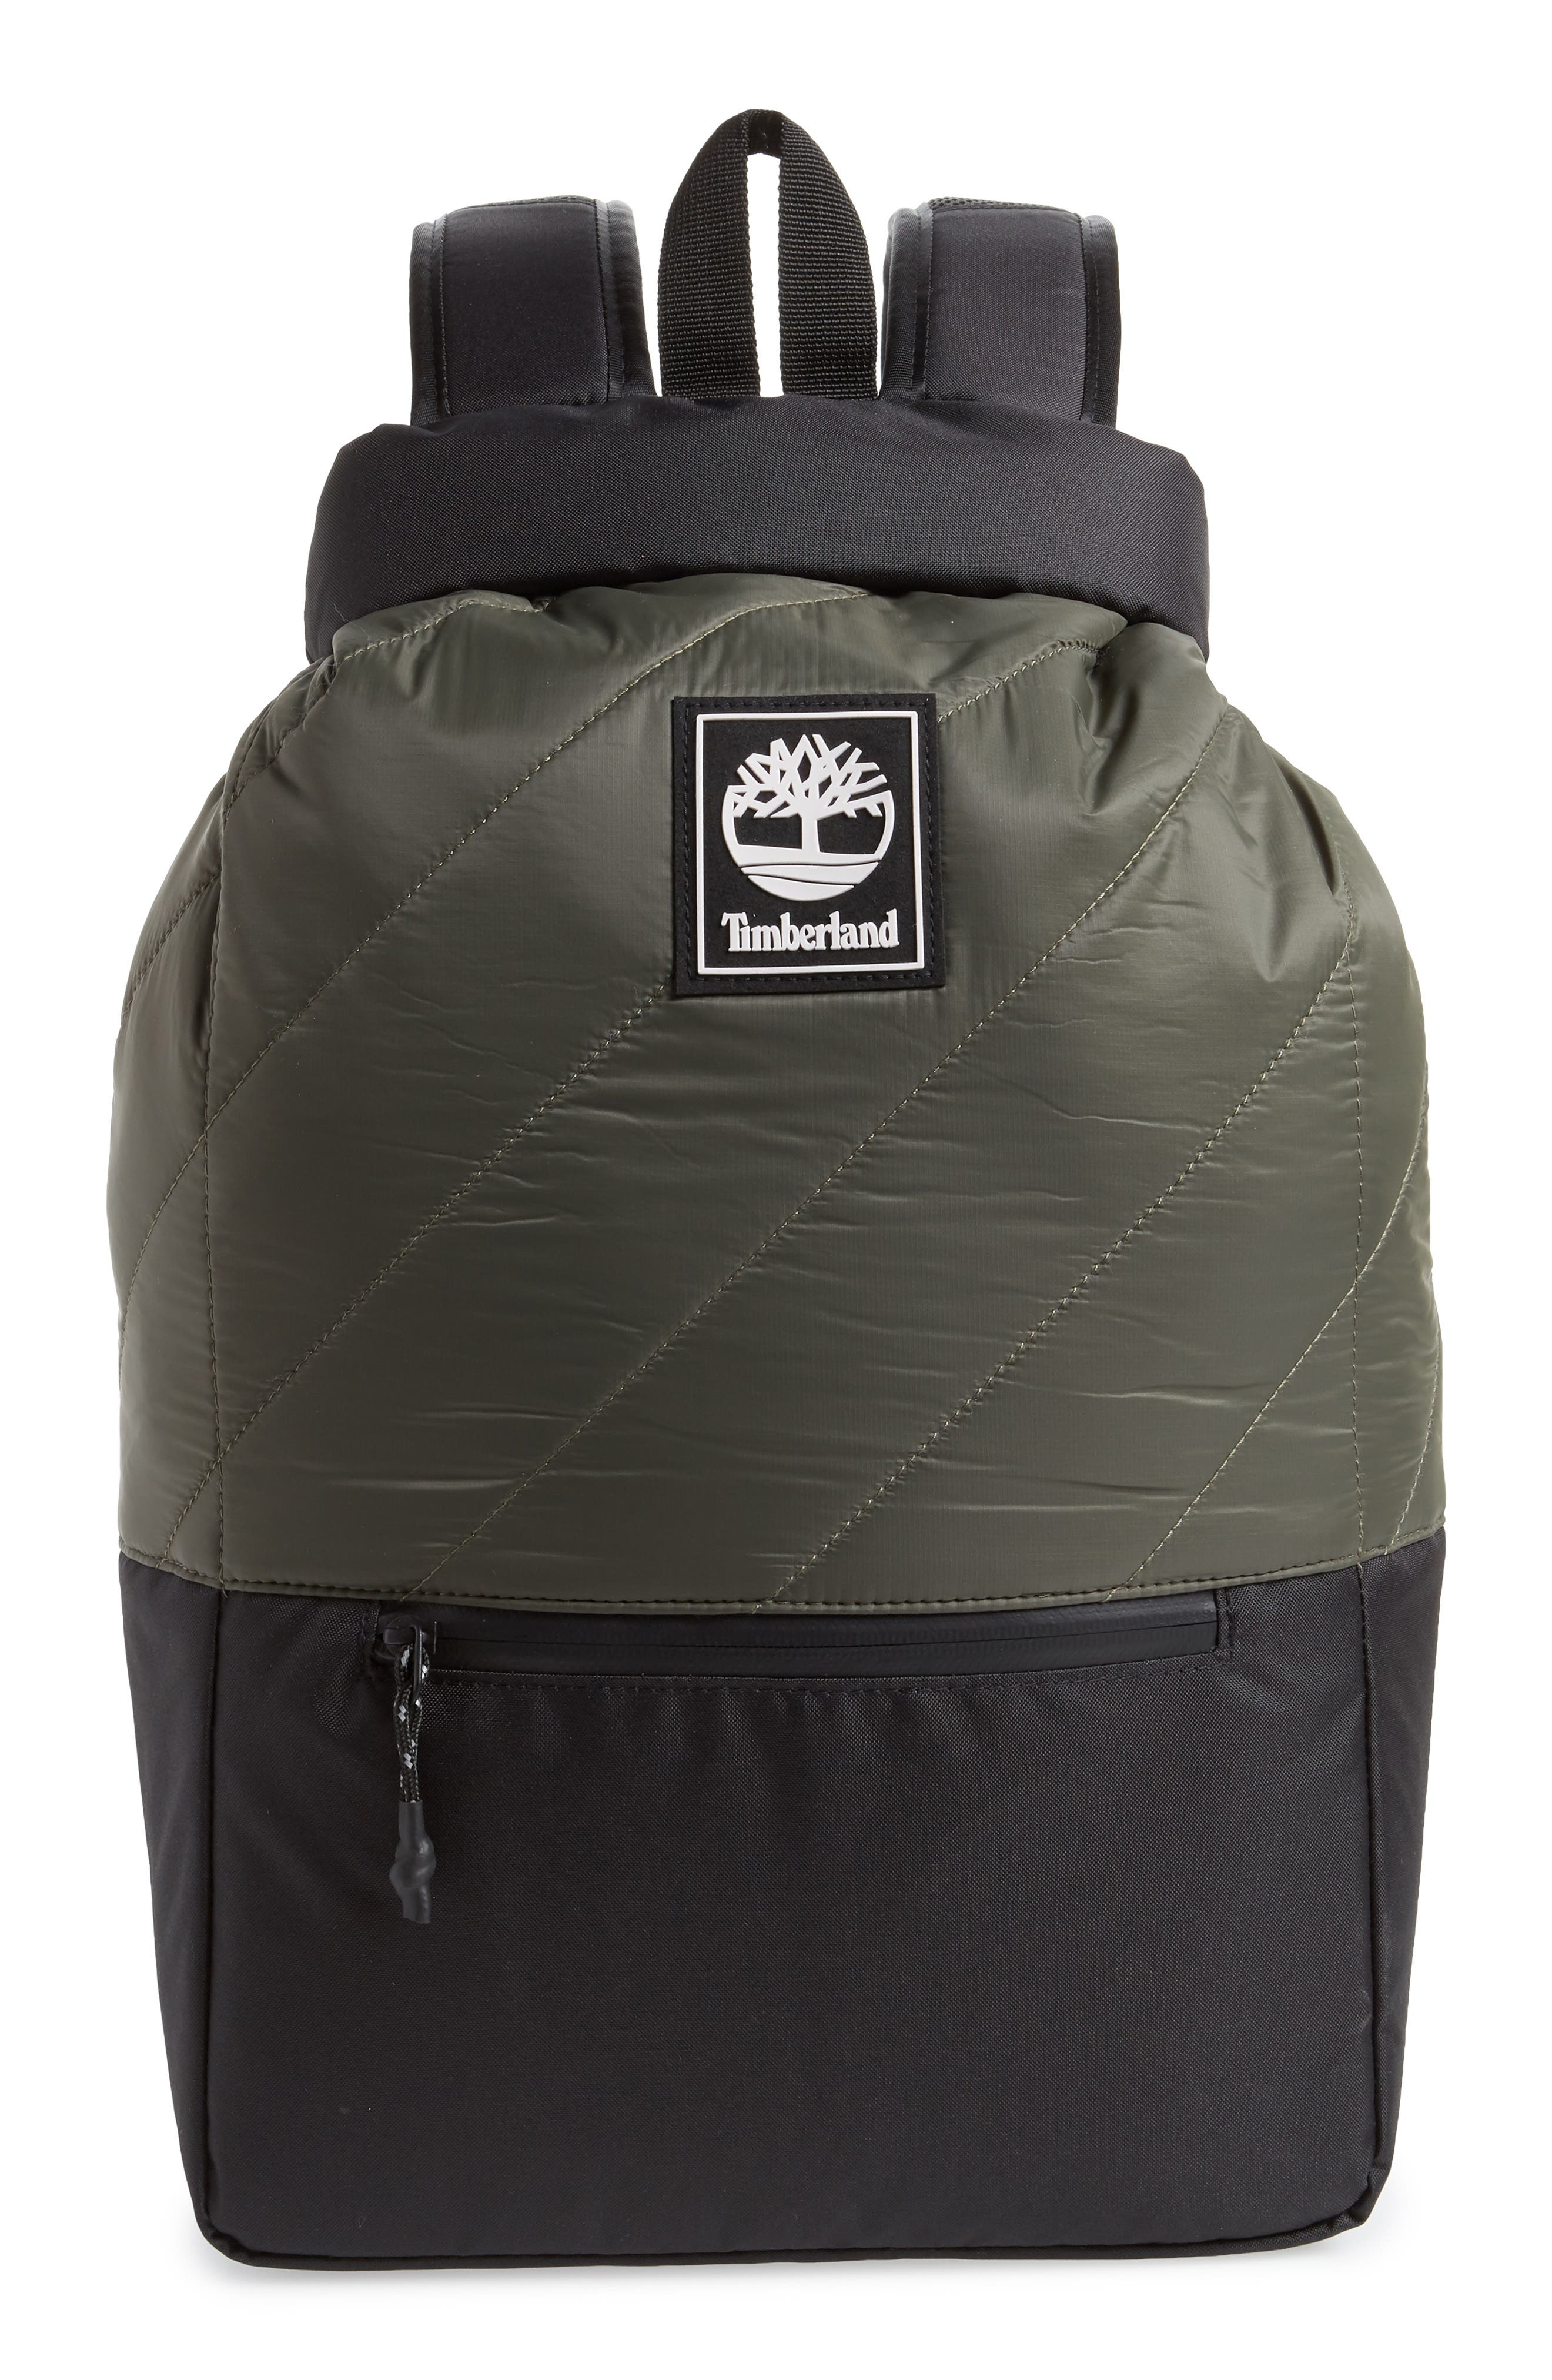 Timberland Roll Top Backpack - Green